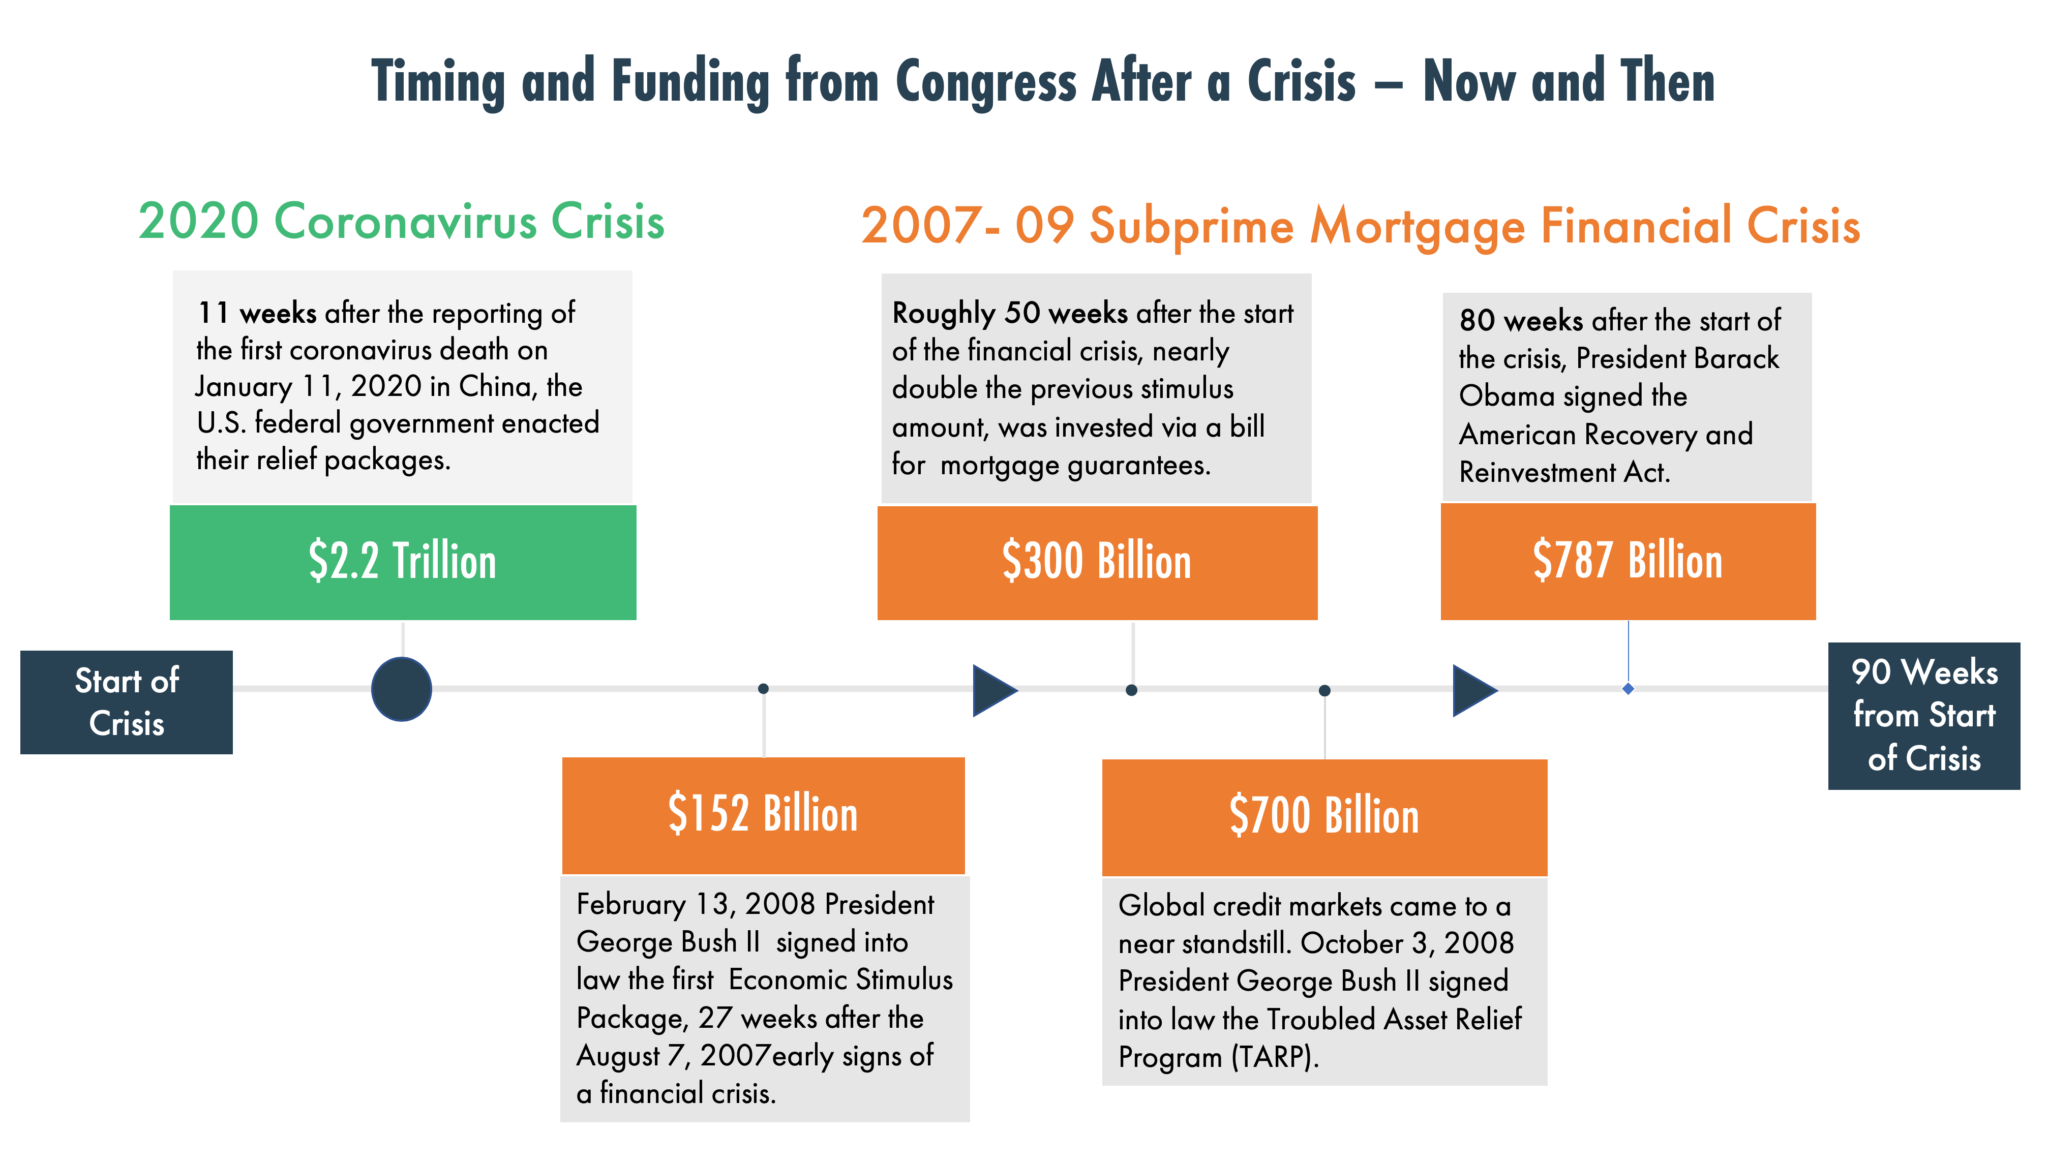 Timeline of funding response from congress after the coronavirus crisis compared to the Global Financial Crisis.